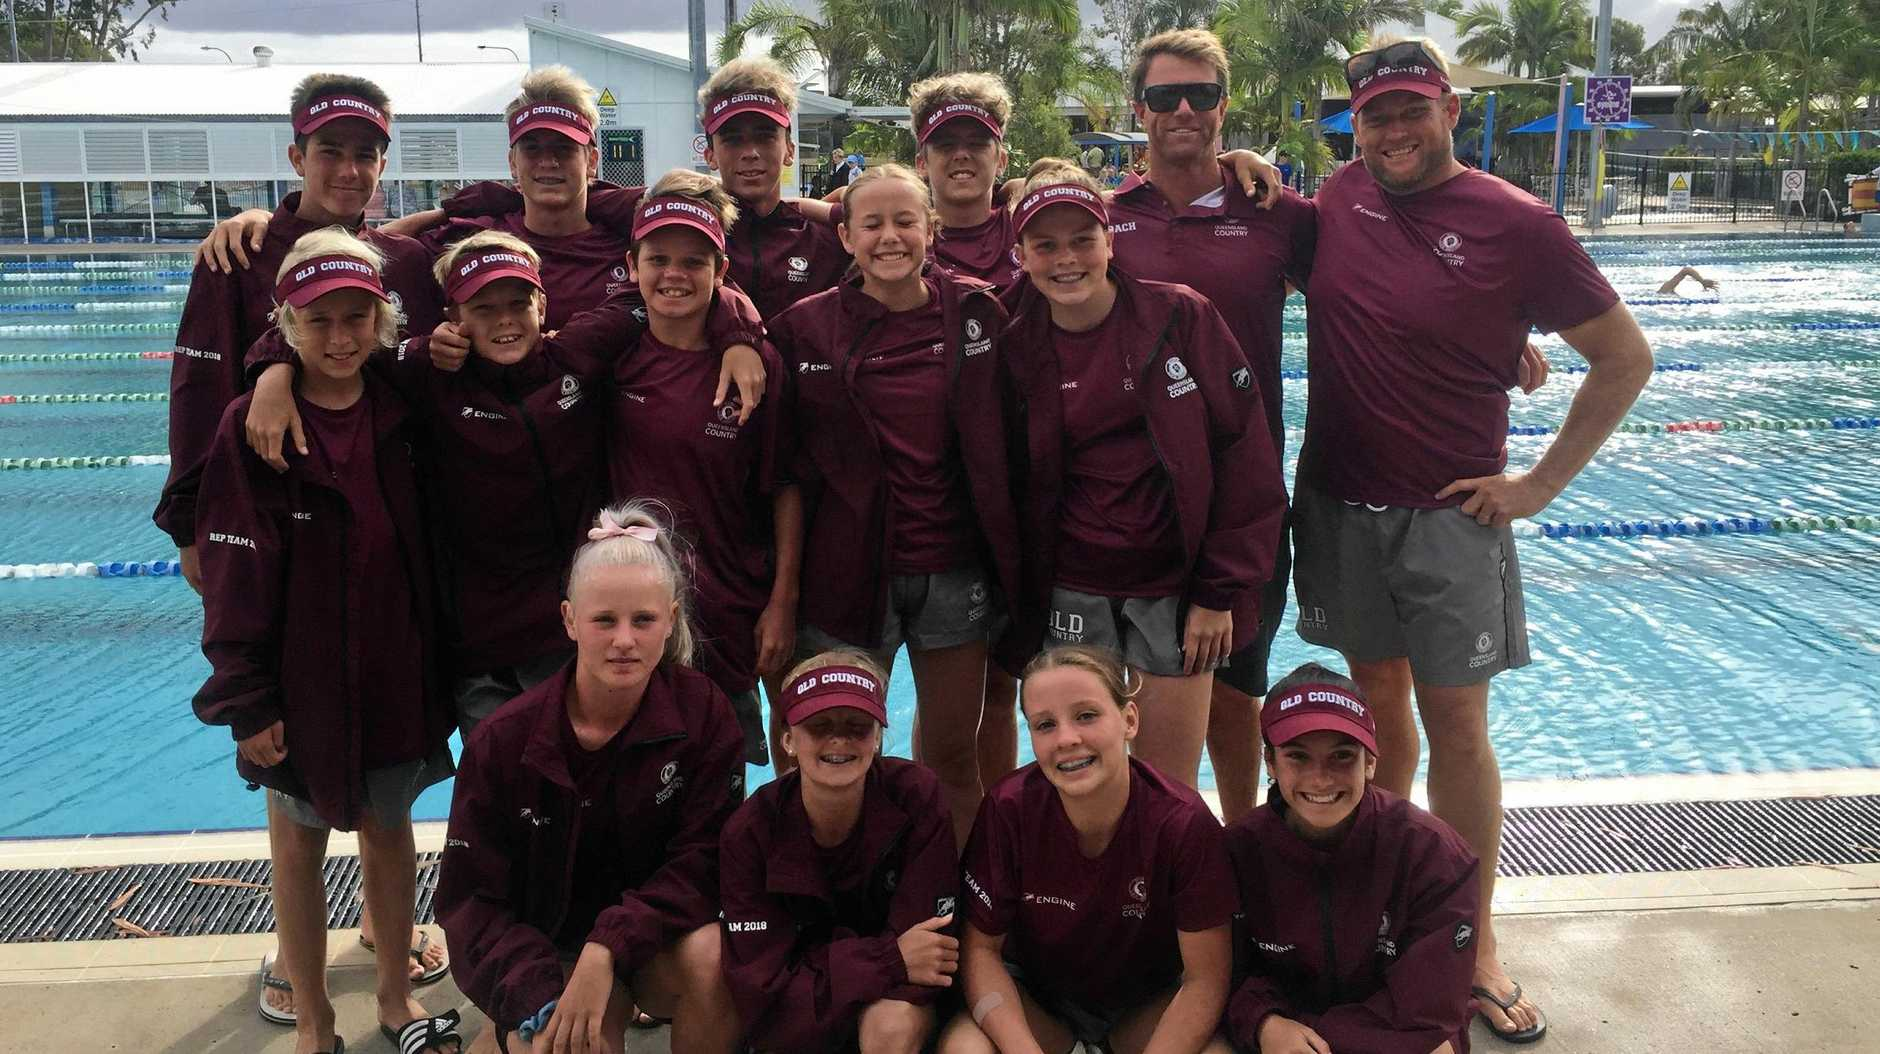 STRONG PERFORMANCE: The Tannum nippers impressed at Mooloolaba.